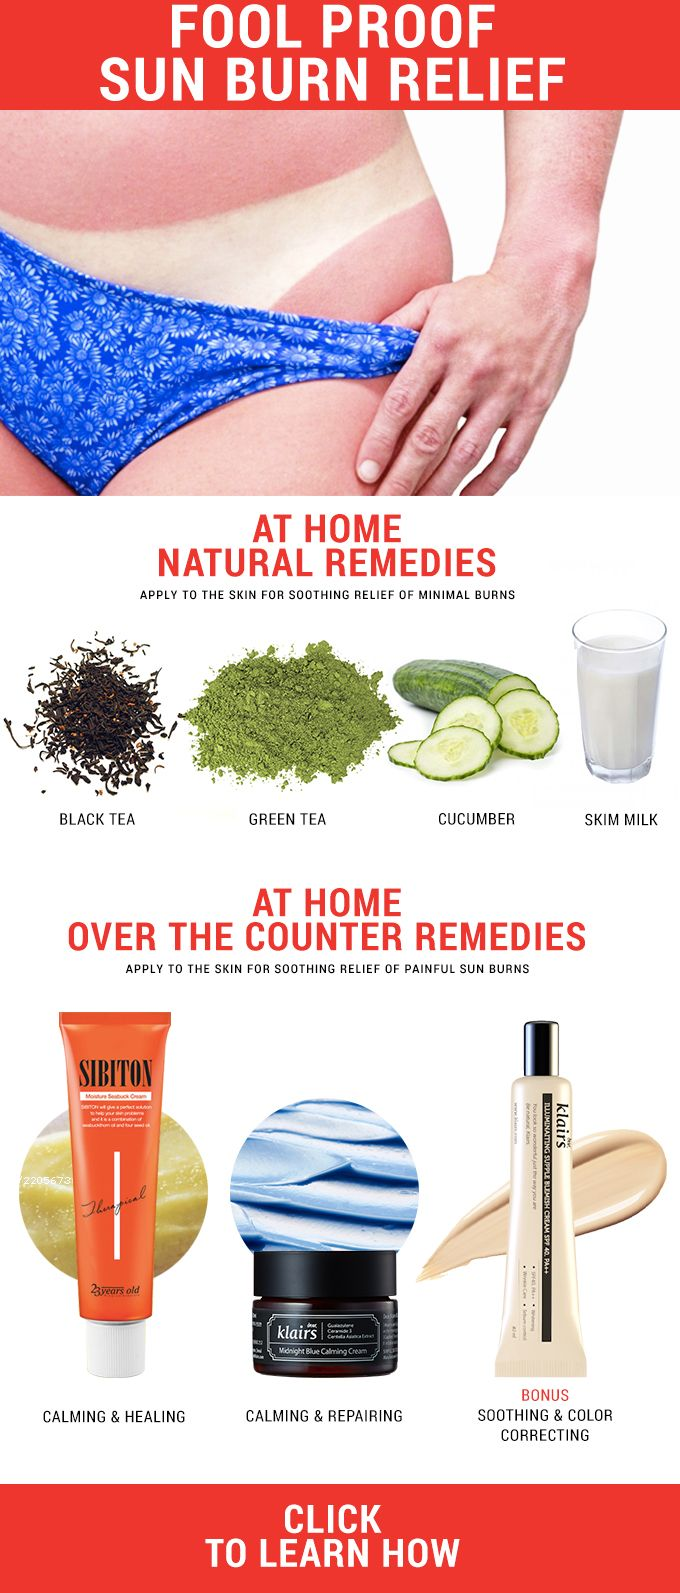 Got a nasty sunburn? Check out our at home sunburn relief and our best over the counter sunburn relief creams to heal your damaged skin fast! - http://www.wishtrendglam.com/fool-proof-sunburn-relief/ #sunburn #sunburnrelief #redskin #vacation #skincare #natural #athome